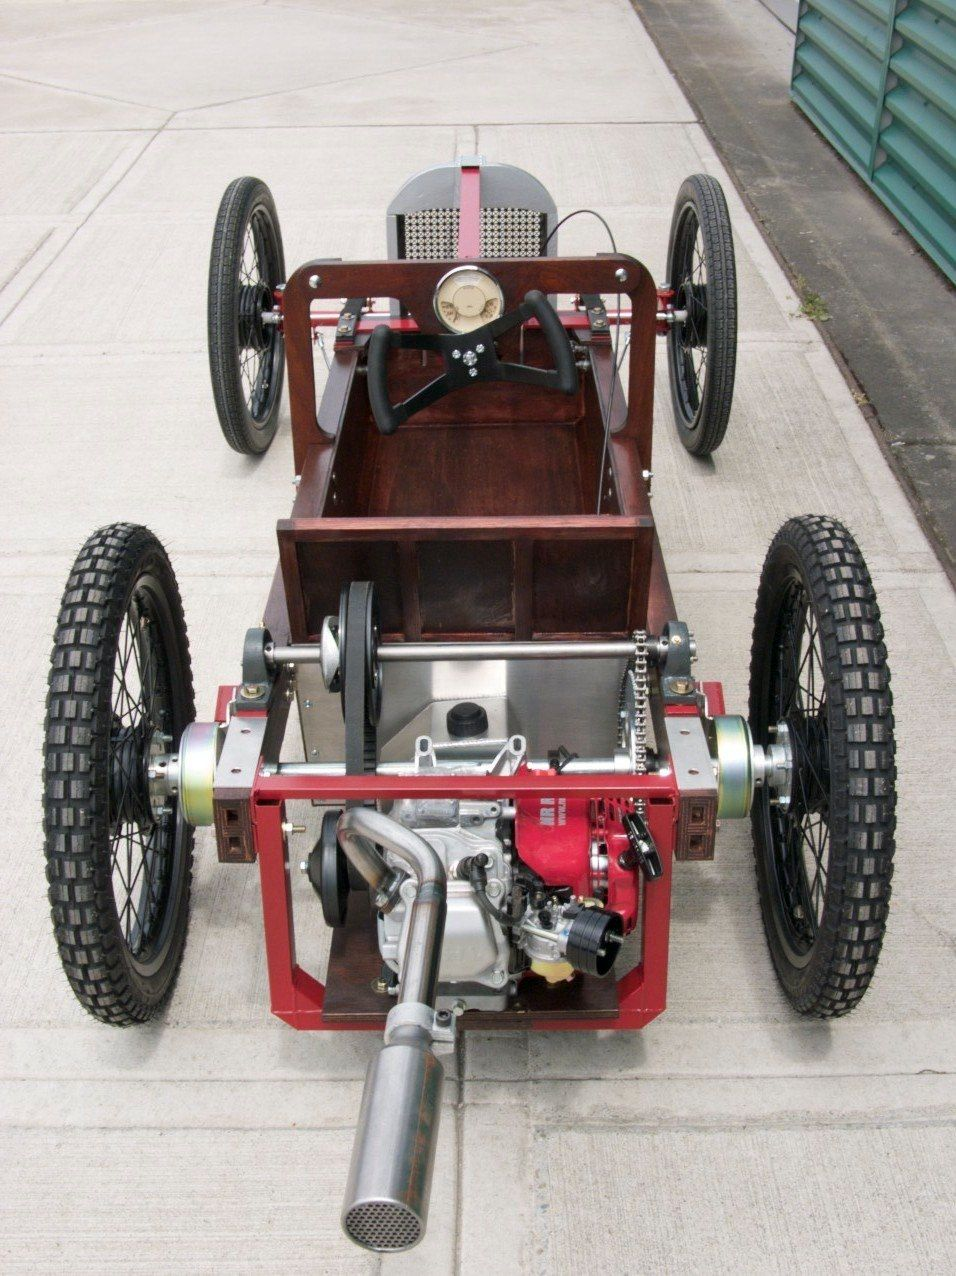 20+ Golf Cart Racing Engines Pictures and Ideas on Weric